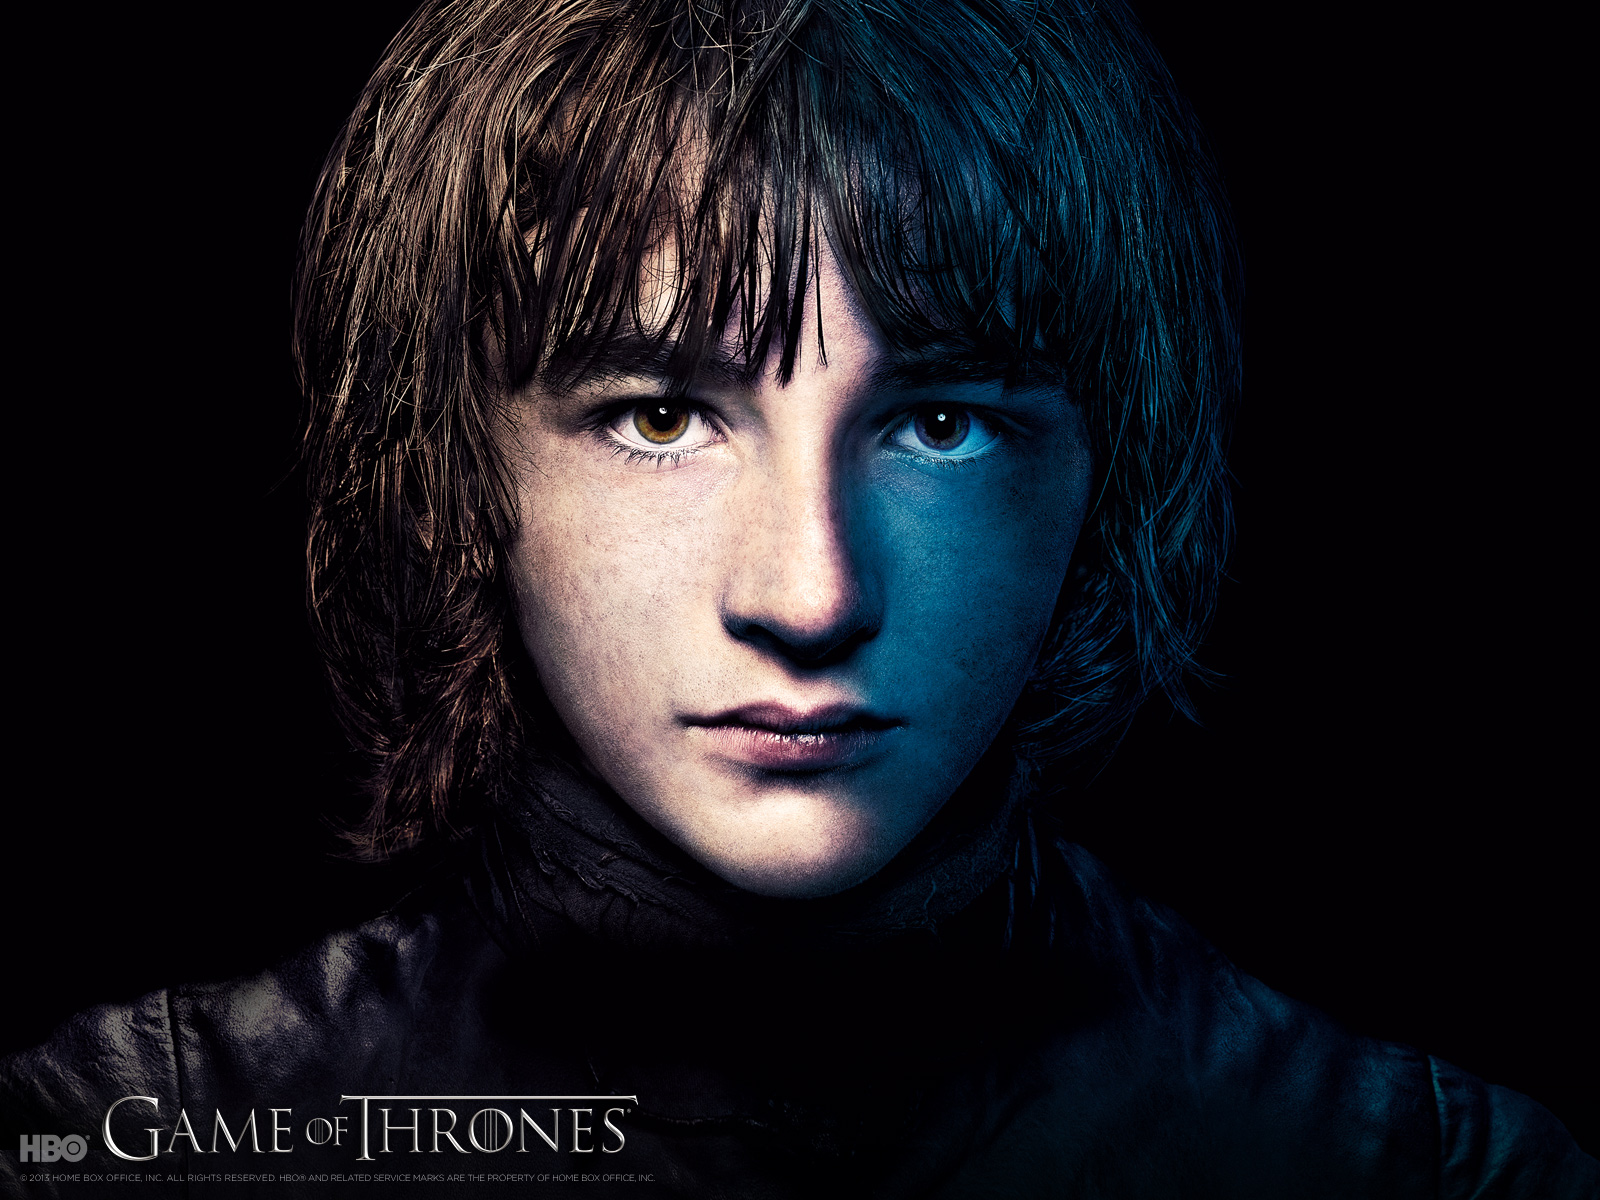 Game Of Thrones Images Bran Stark HD Wallpaper And Background Photos